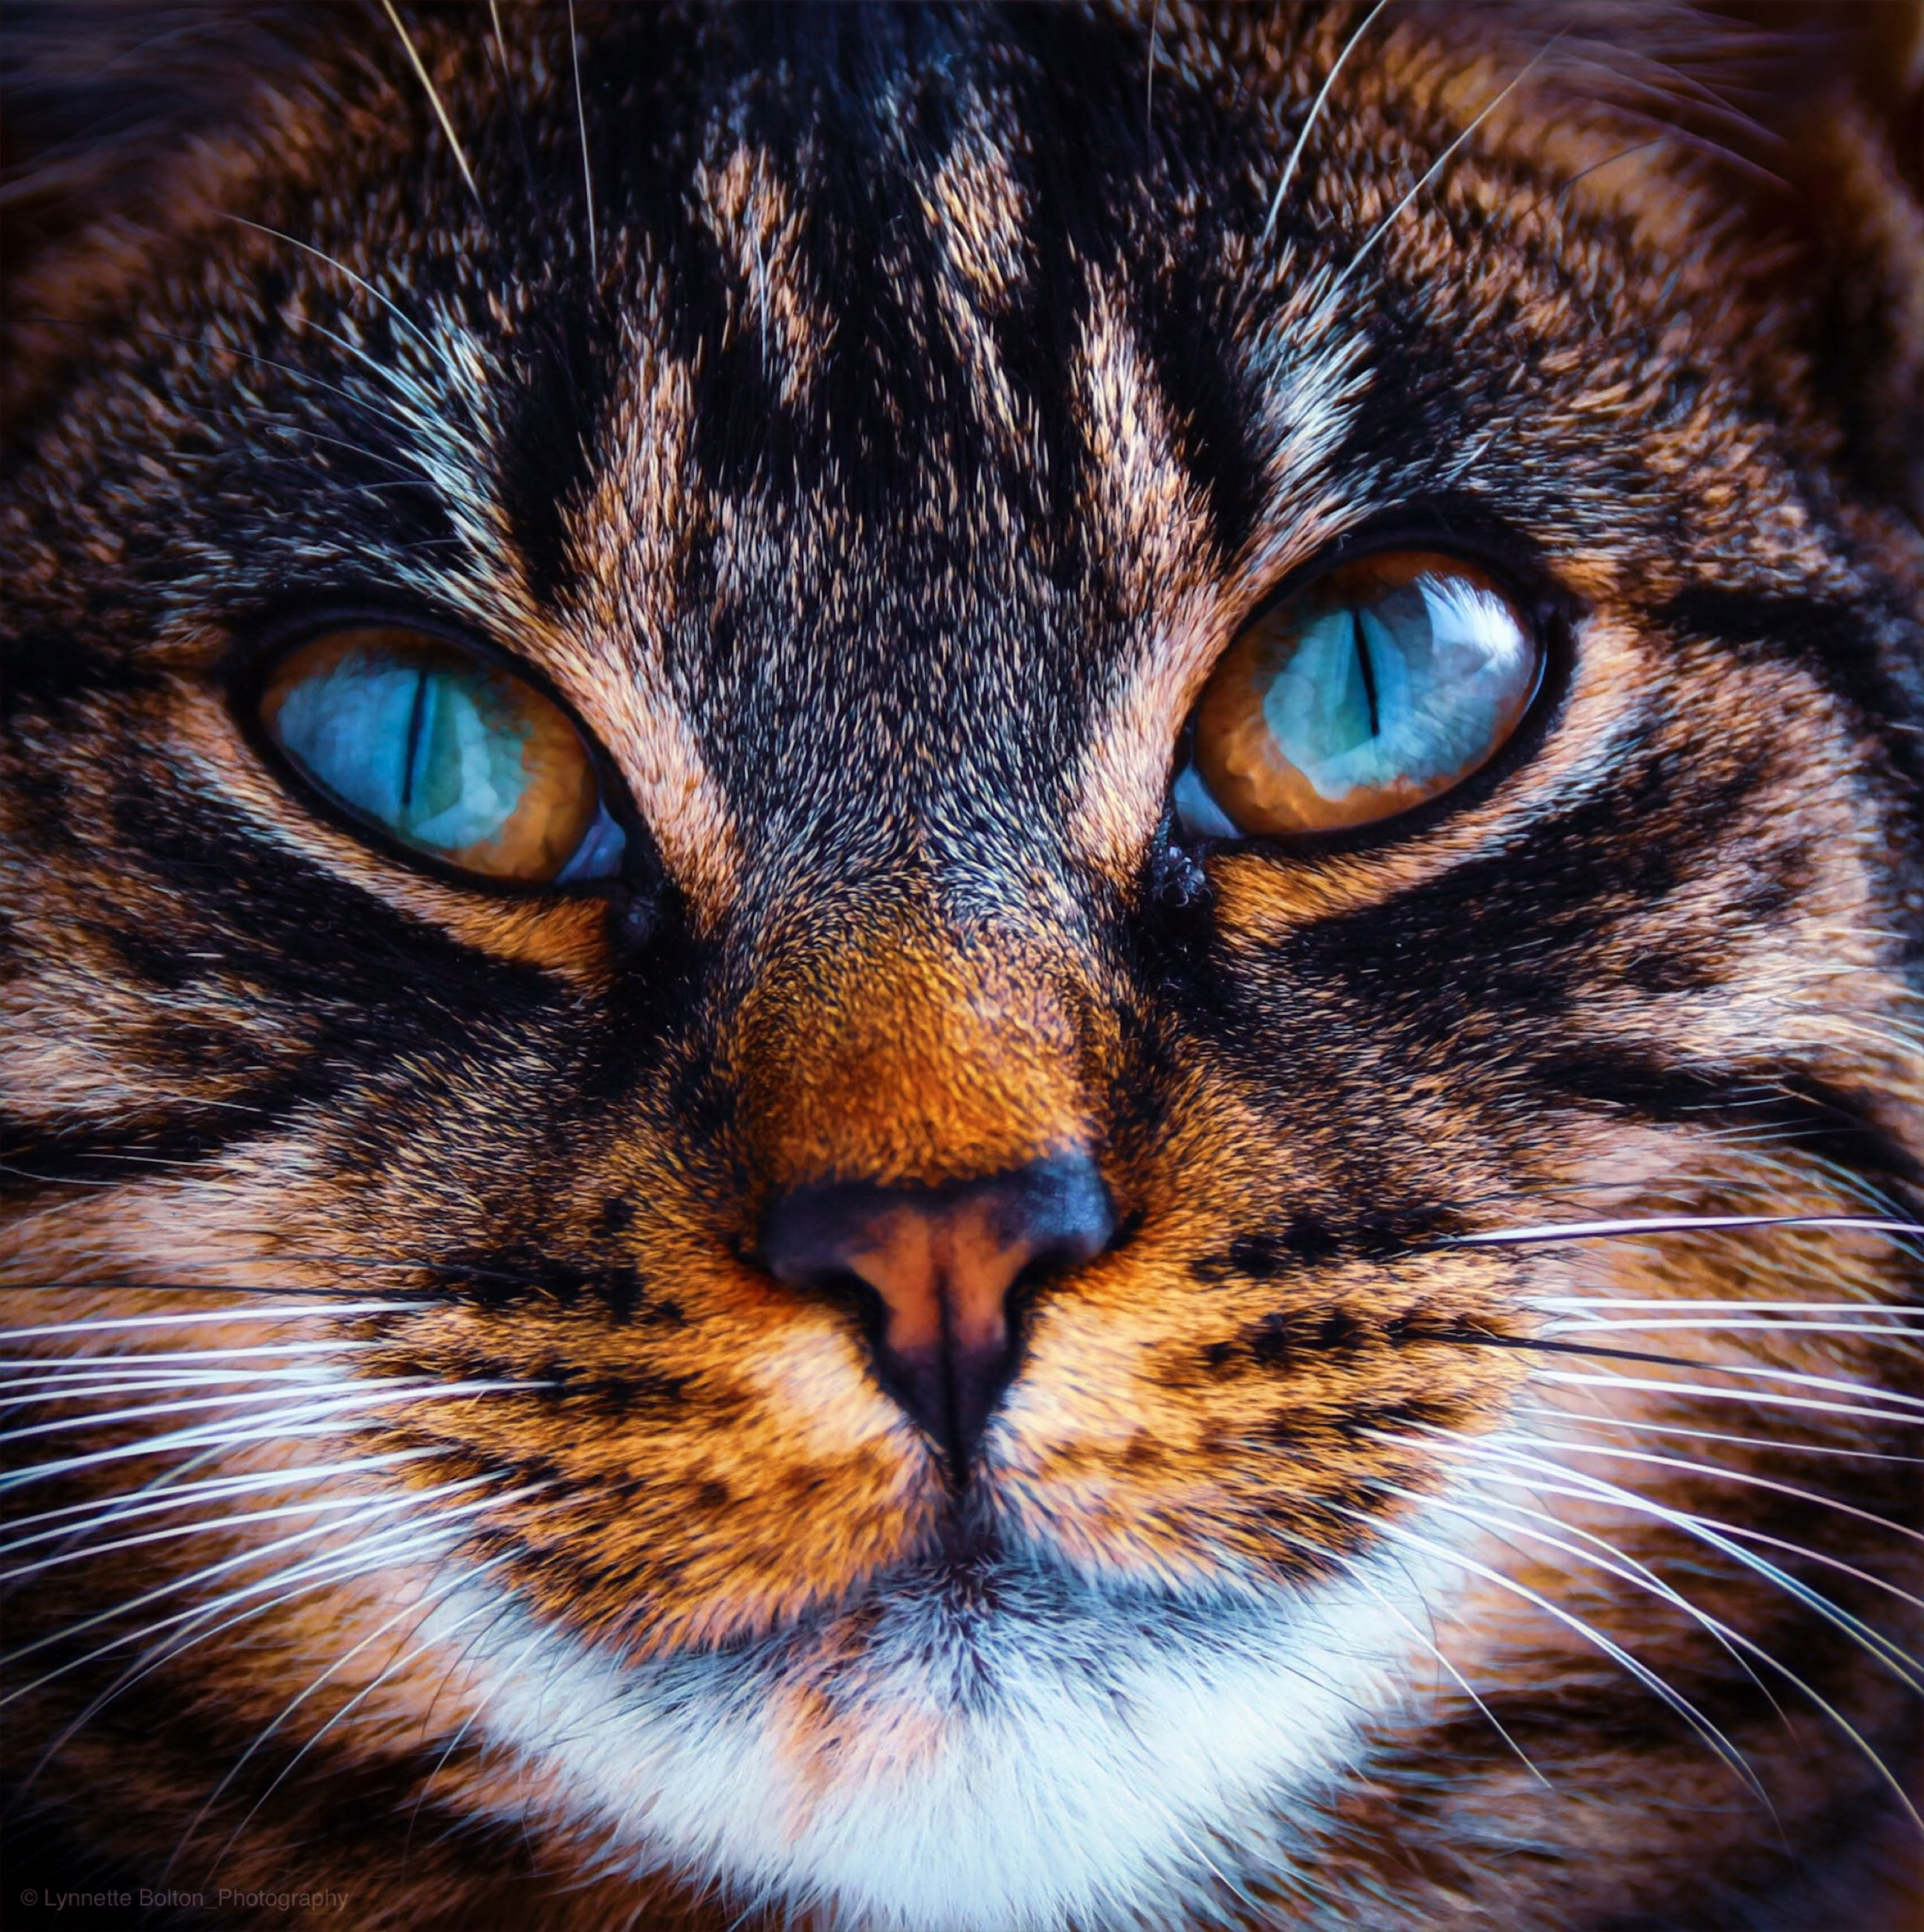 one animal, mammal, animal body part, cat, close-up, portrait, feline, pets, domestic cat, looking at camera, domestic animals, domestic, animal eye, eye, whisker, no people, aggression, snout